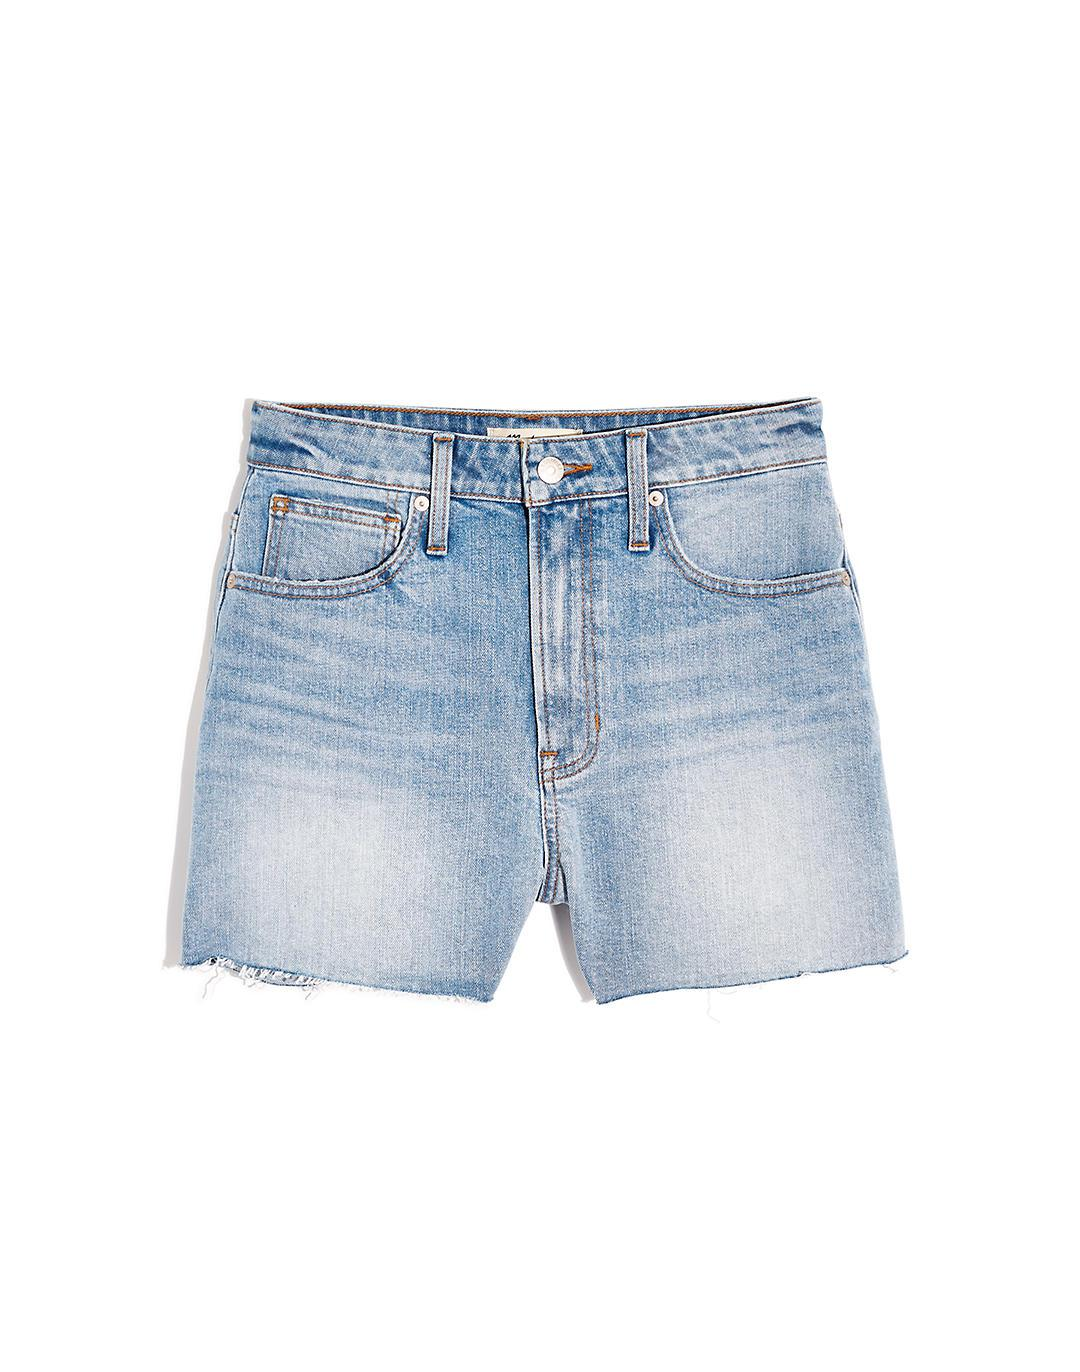 The Curvy Perfect Jean Short in Baylis Wash 3